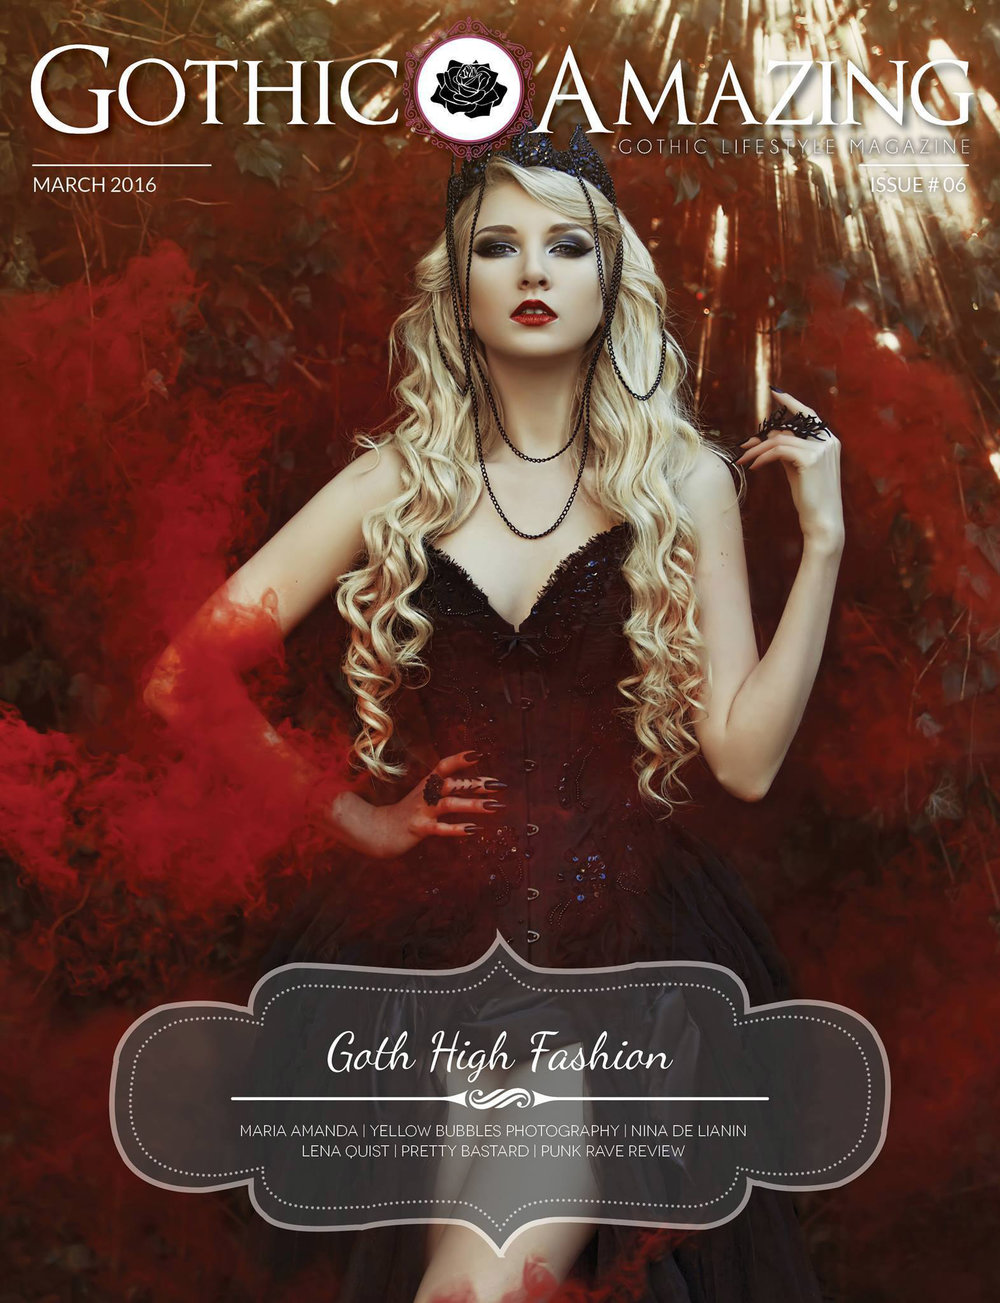 grace-almera-gothic-and-amazing-maria-amanda-cover-photo-magazine-published.jpg